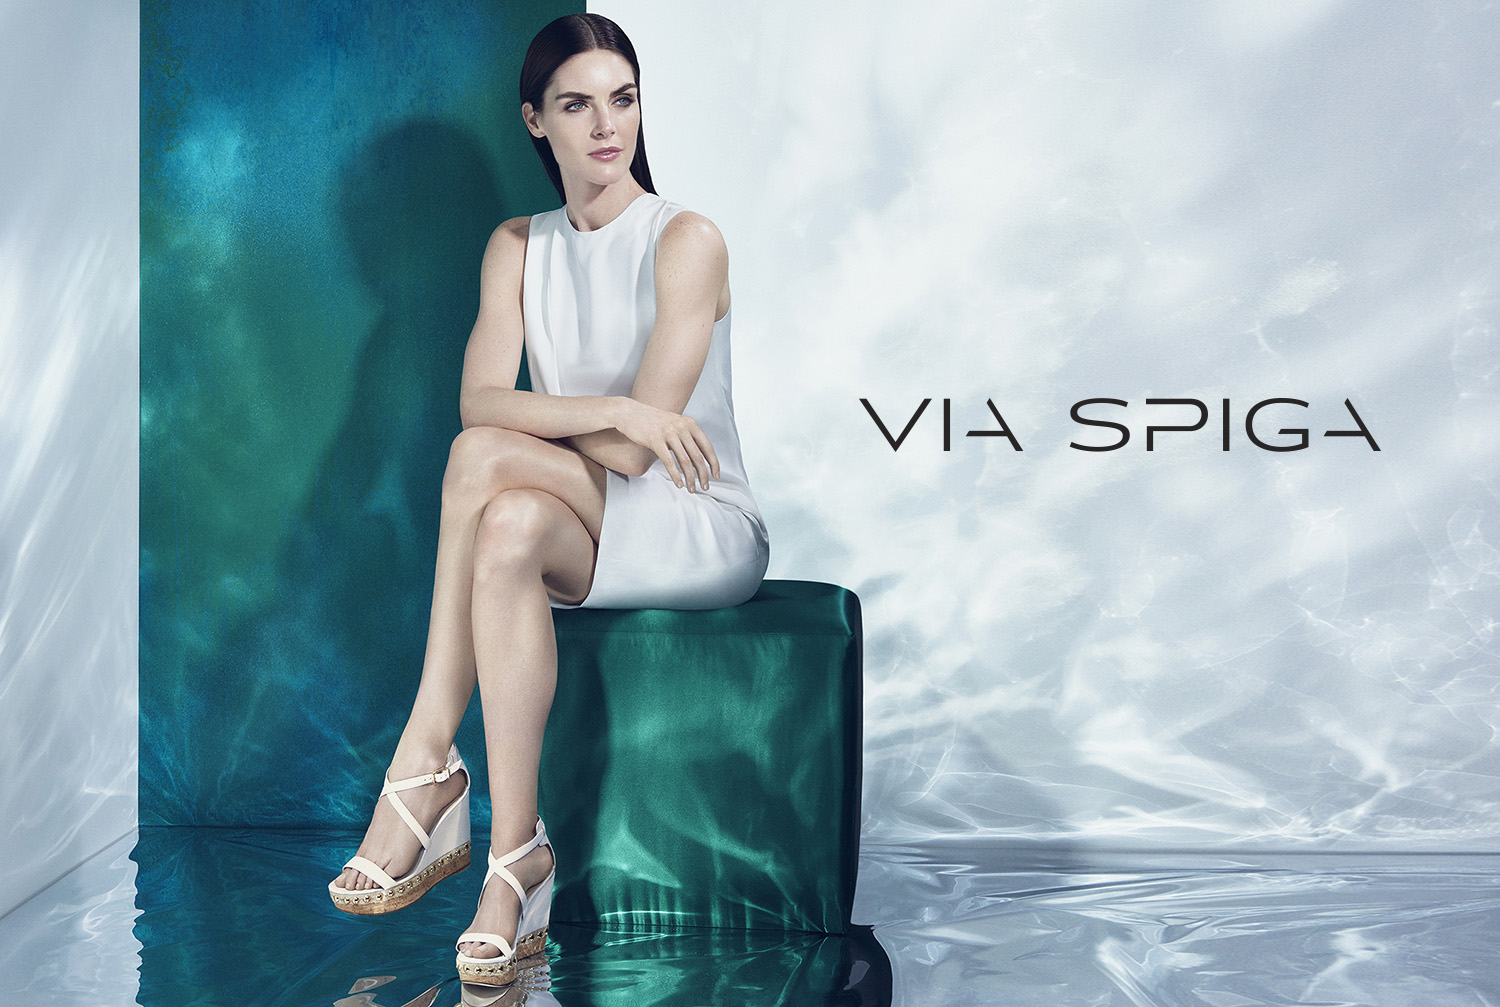 The Via Spiga Moss wedge sandal from the Spring 2015 collection.